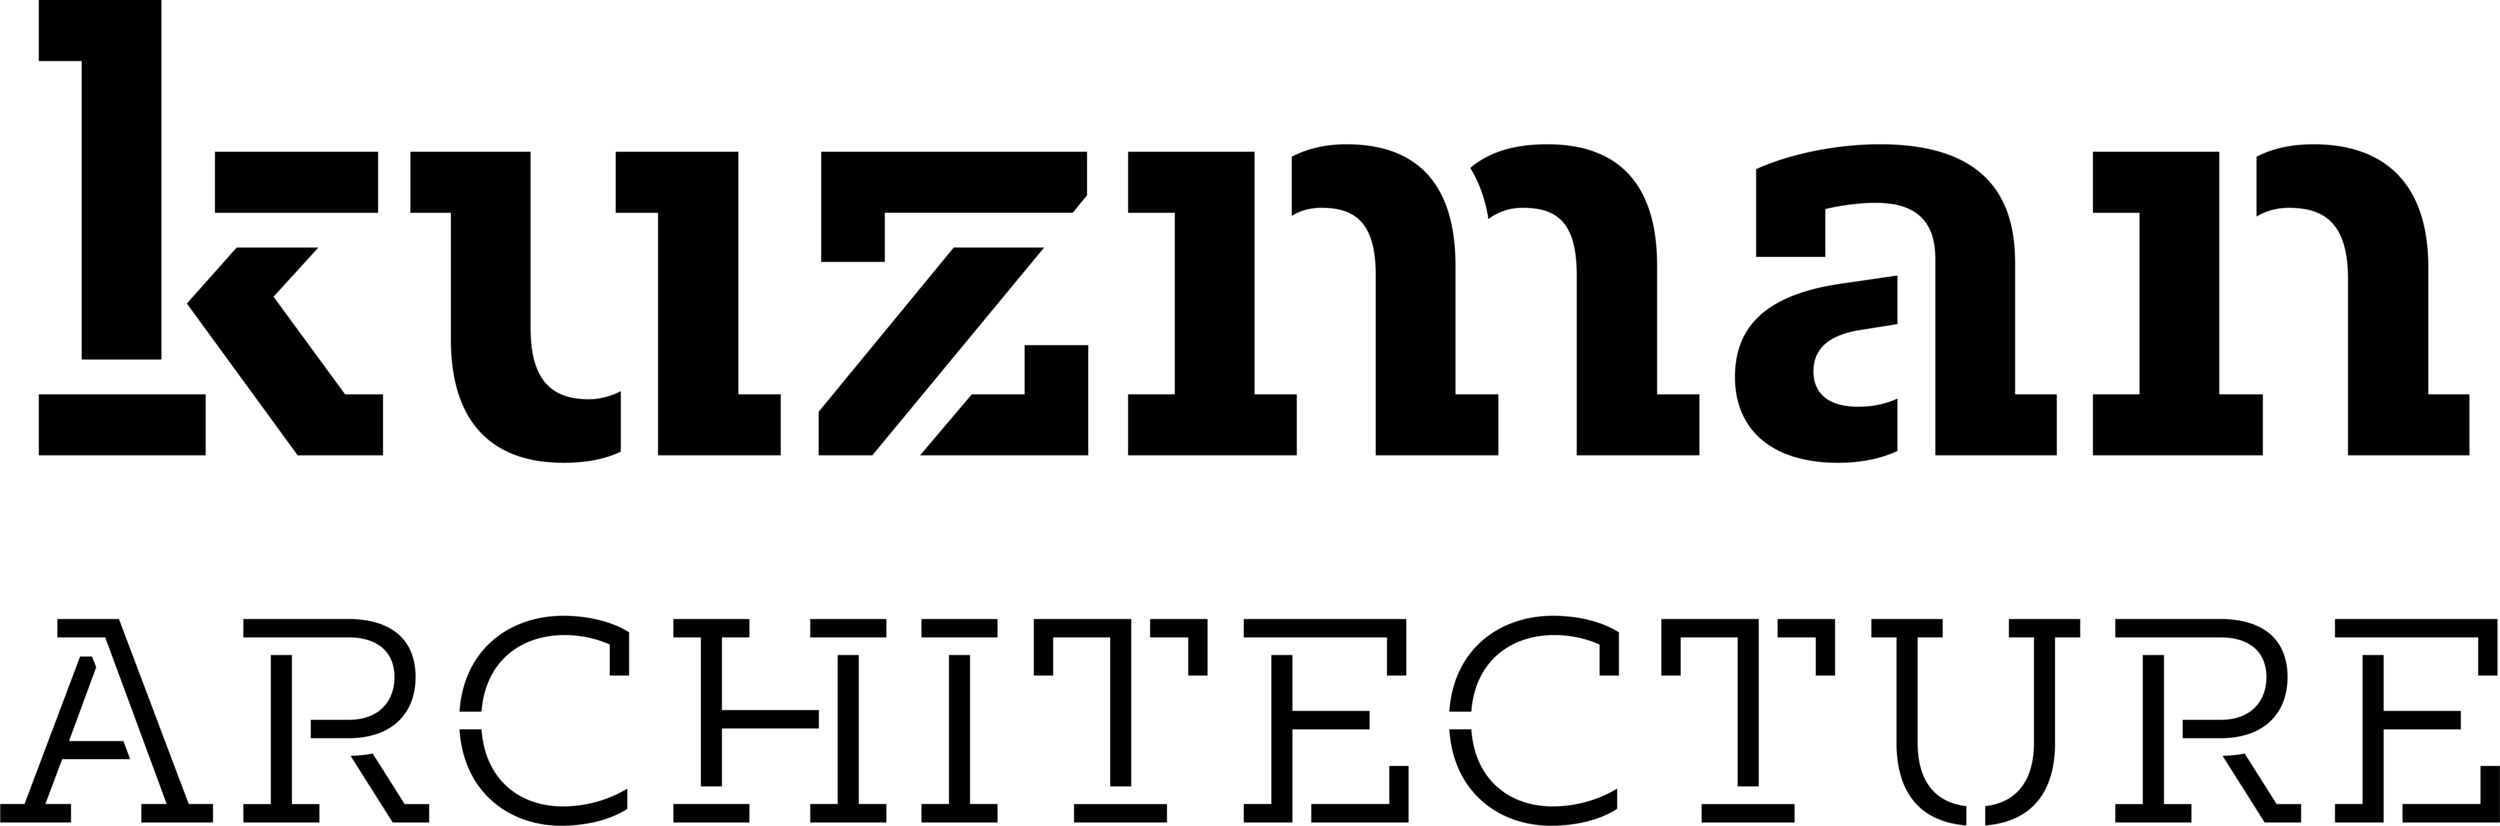 kuzman-logo-hard-crop_black.png